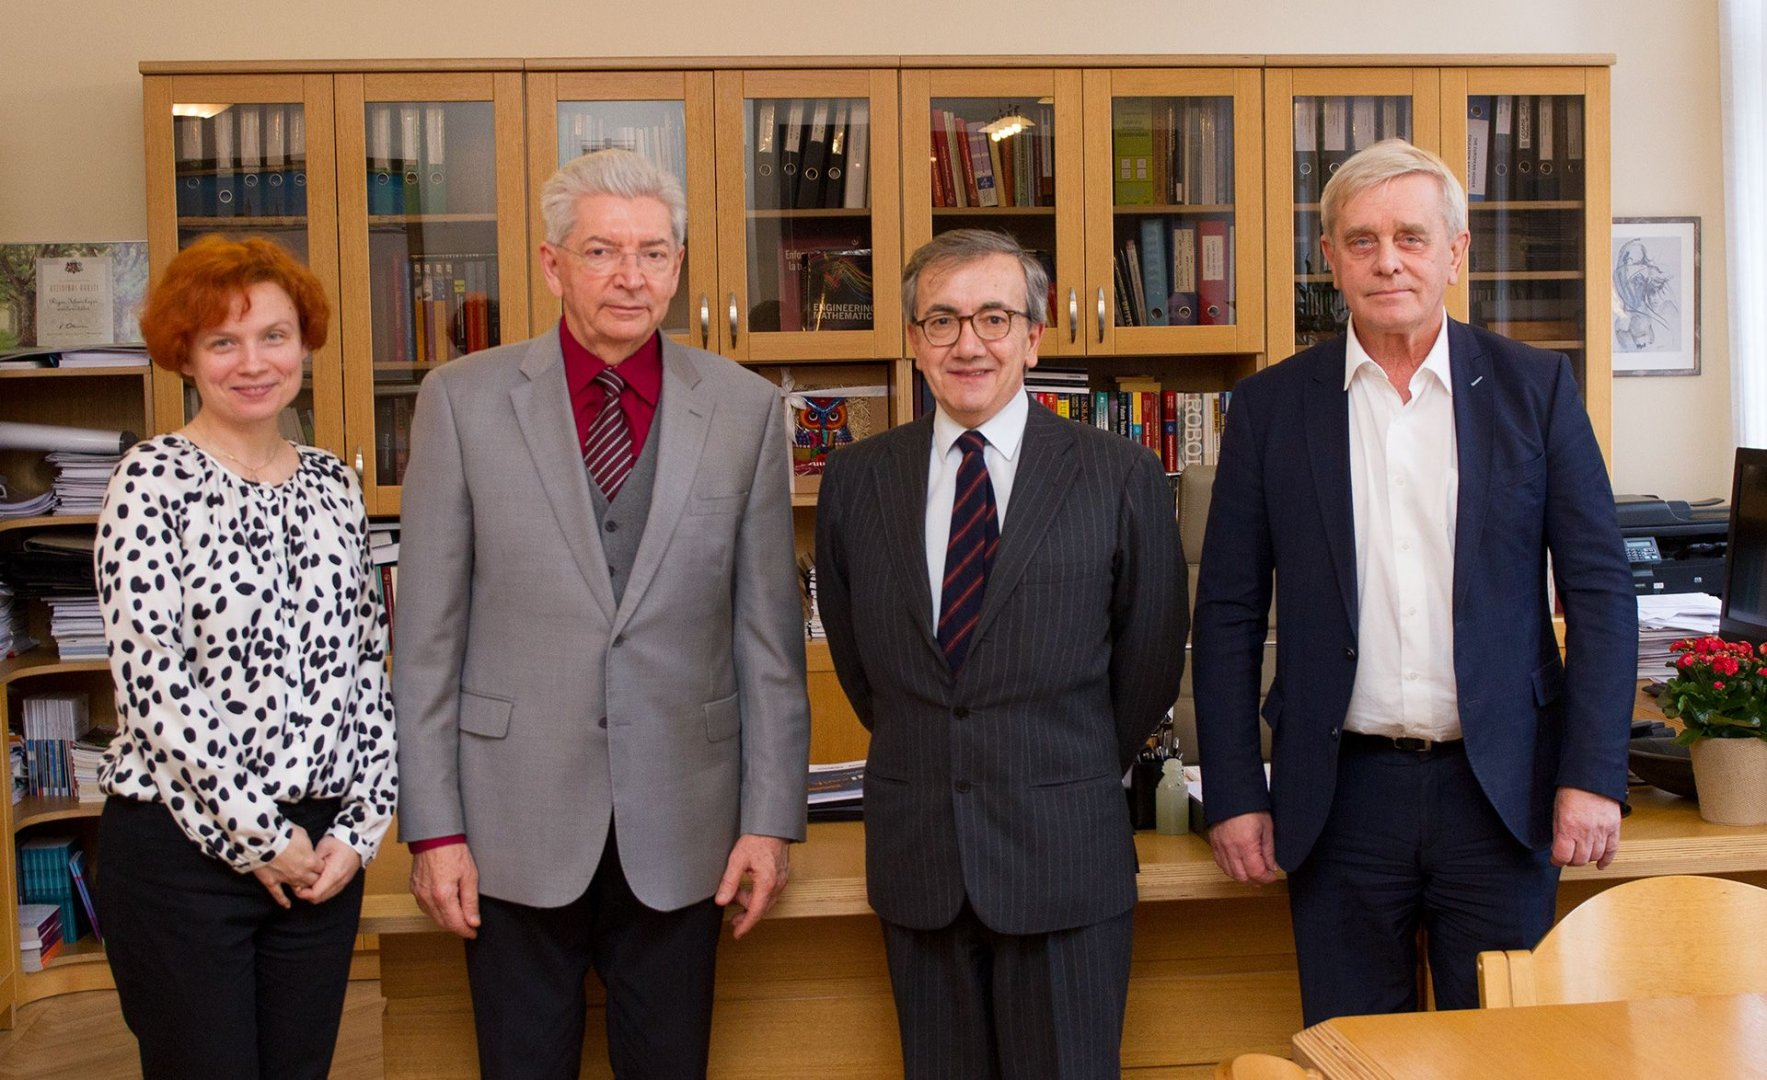 RTU Rector and the Ambassador of Italy in Latvia Discuss Opportunities for Future Cooperation